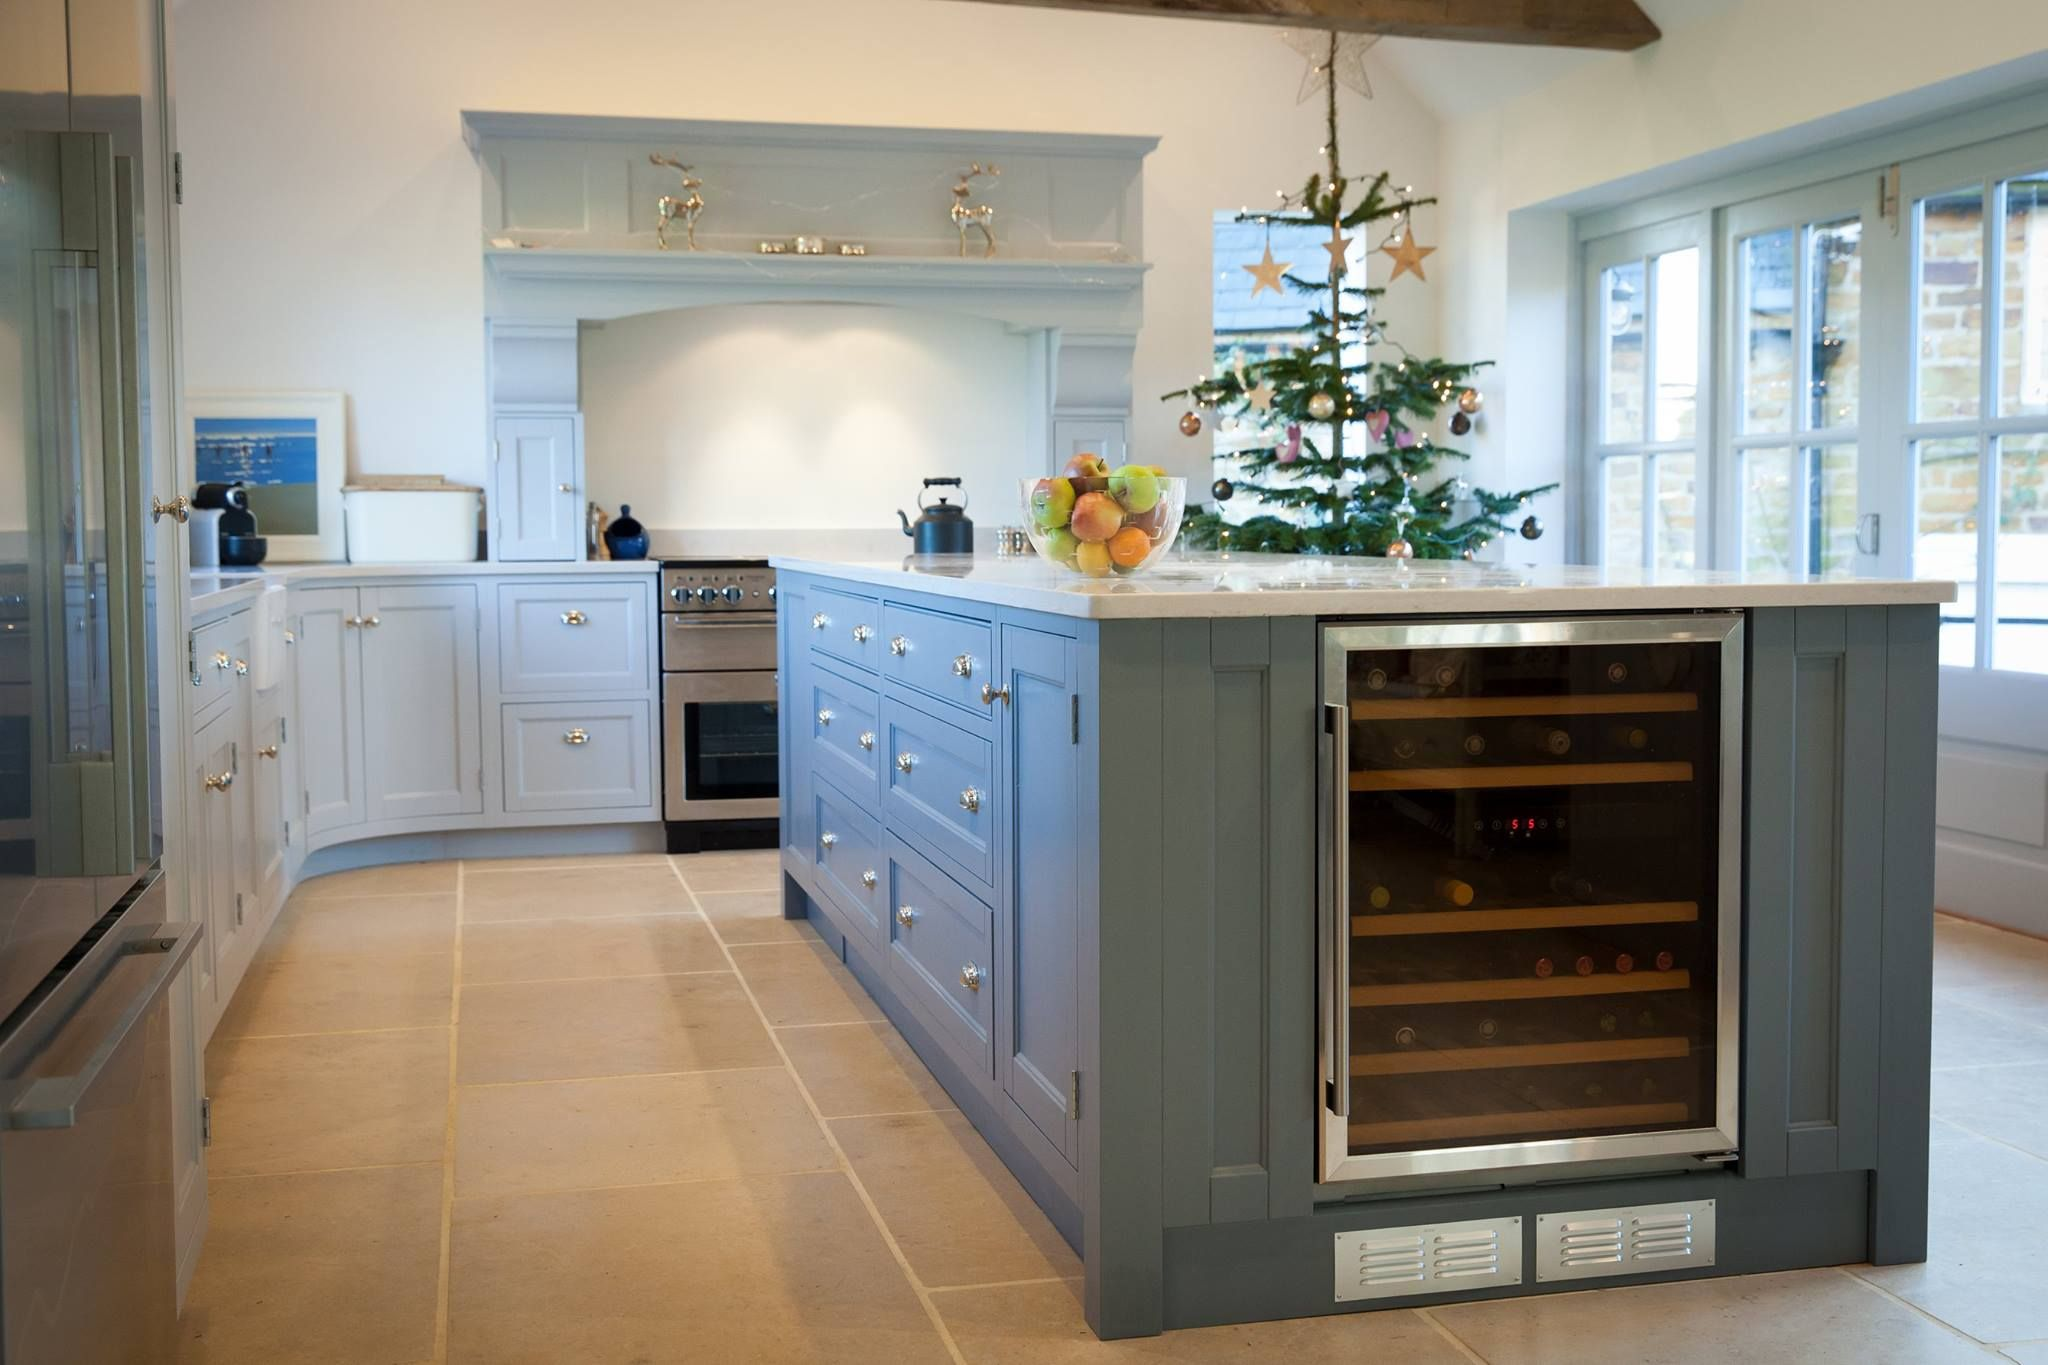 Our Period English Kitchen Painted Two Shades Of Grey Blue Our Clients Wanted A Very Large Island Kitchen Plans Shaker Style Kitchens Quality Kitchen Cabinets